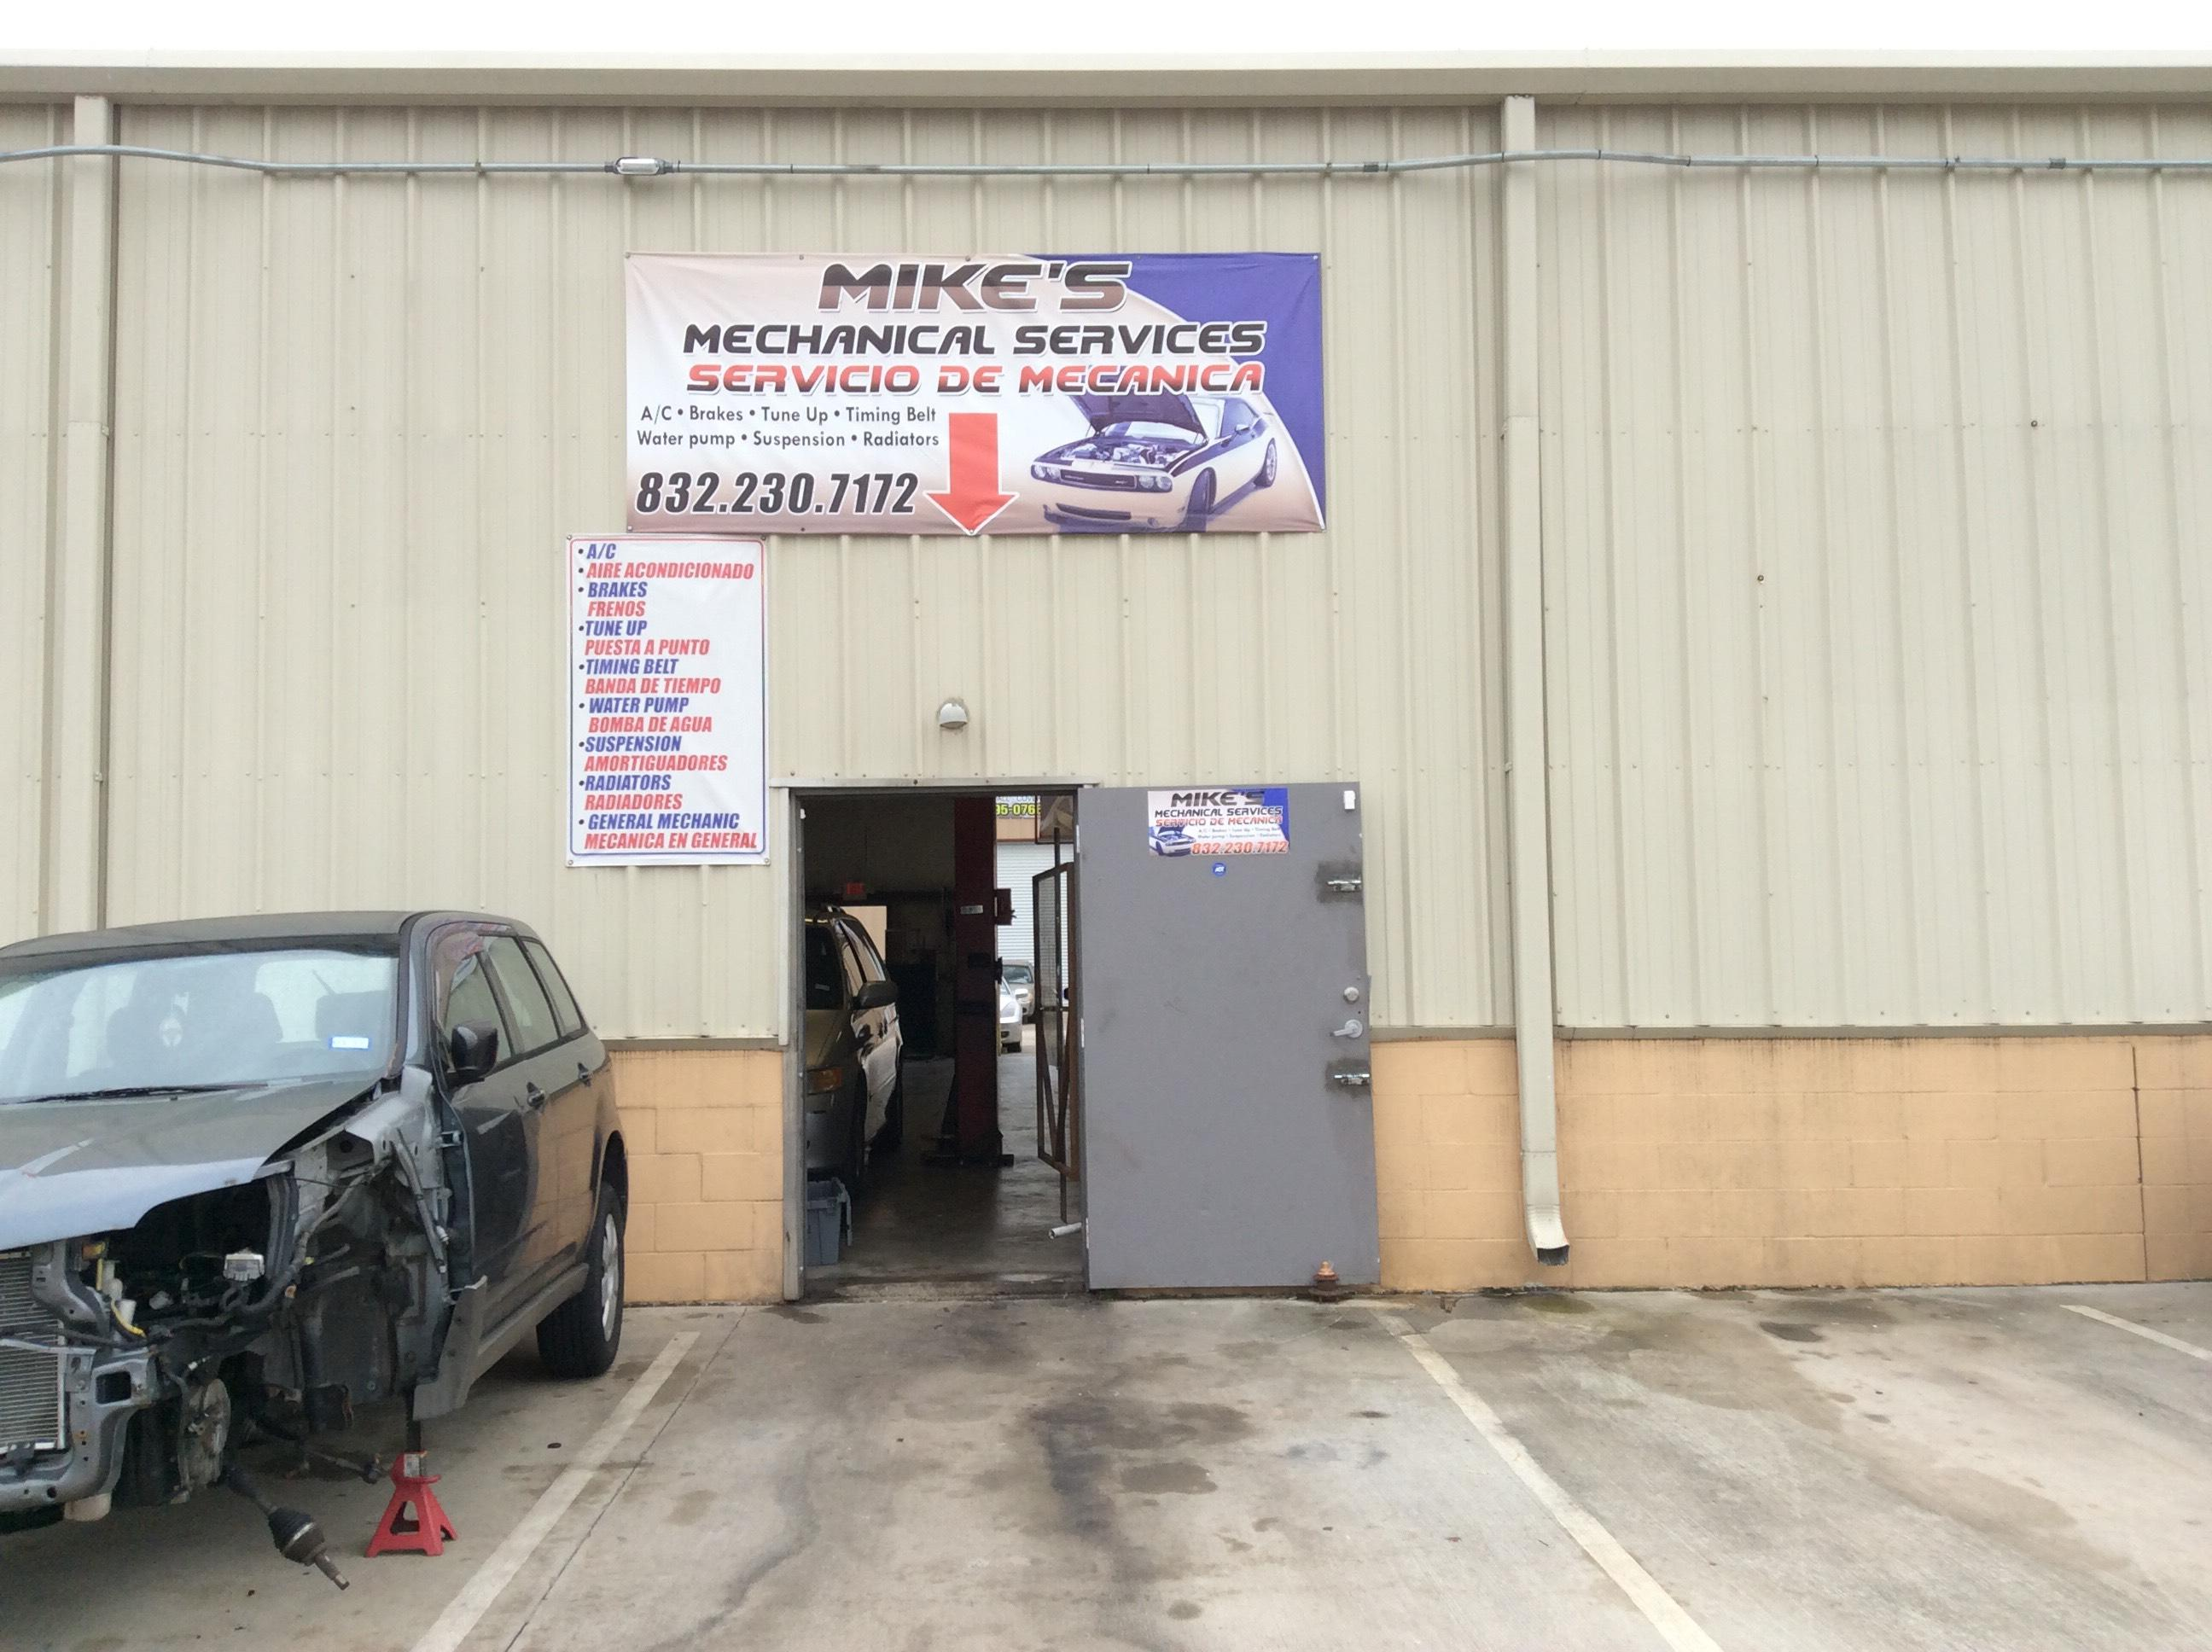 Mike's Mechanical Services image 5